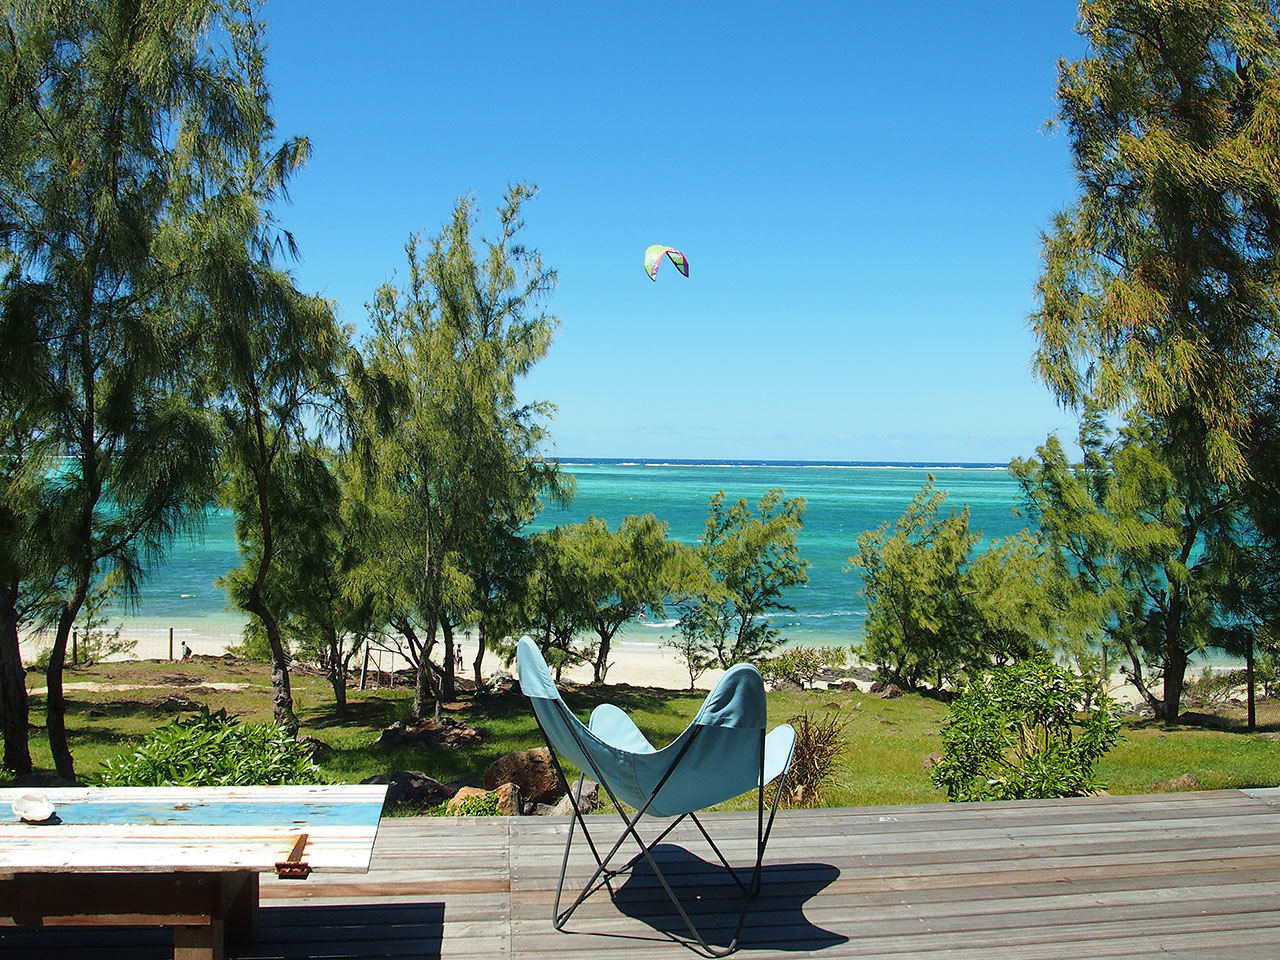 bakwa-lodge-kitesurf-activity-from-terrace